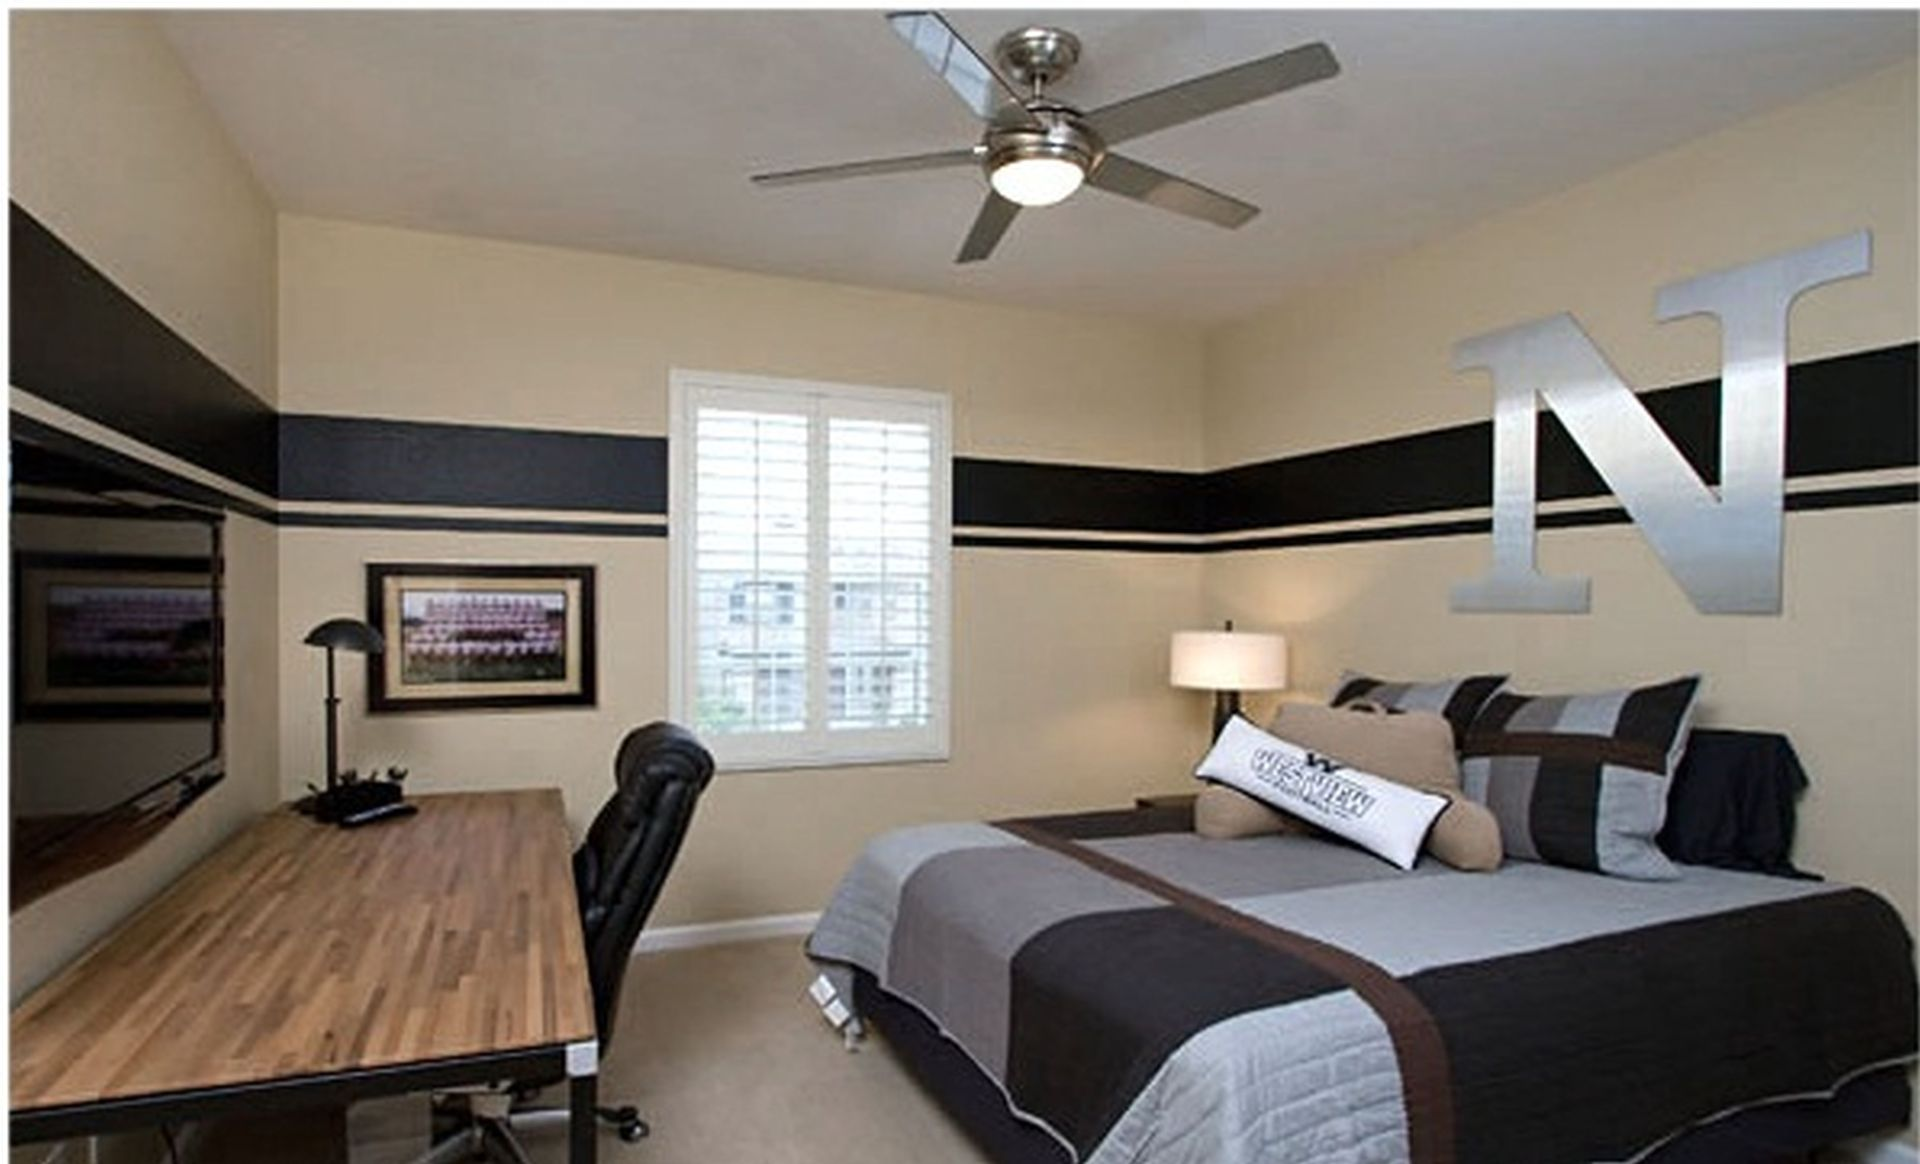 cool-bedrooms-for-guys-new-on-contemporary-hd-images.jpg